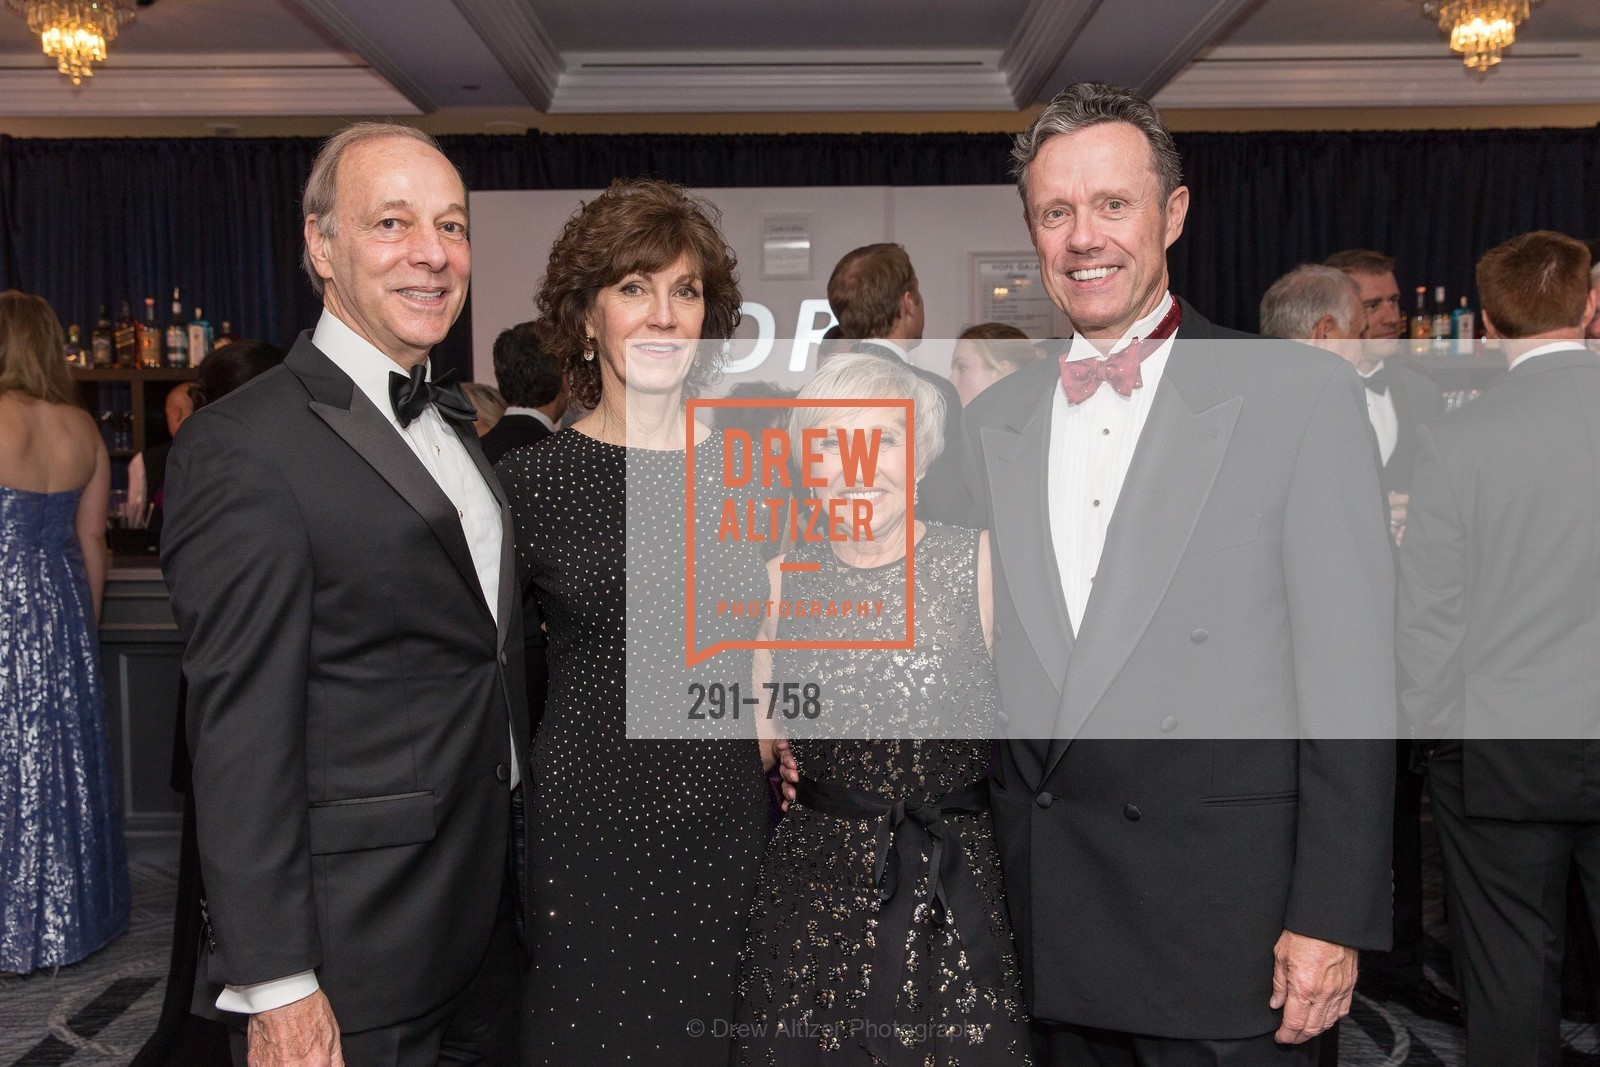 Timothy Connor, Lee Connor, Pam Sagan, Bill Sagan, JUVENILE DIABETES RESEARCH FOUNDATION  Hope Gala, US, May 30th, 2015,Drew Altizer, Drew Altizer Photography, full-service agency, private events, San Francisco photographer, photographer california